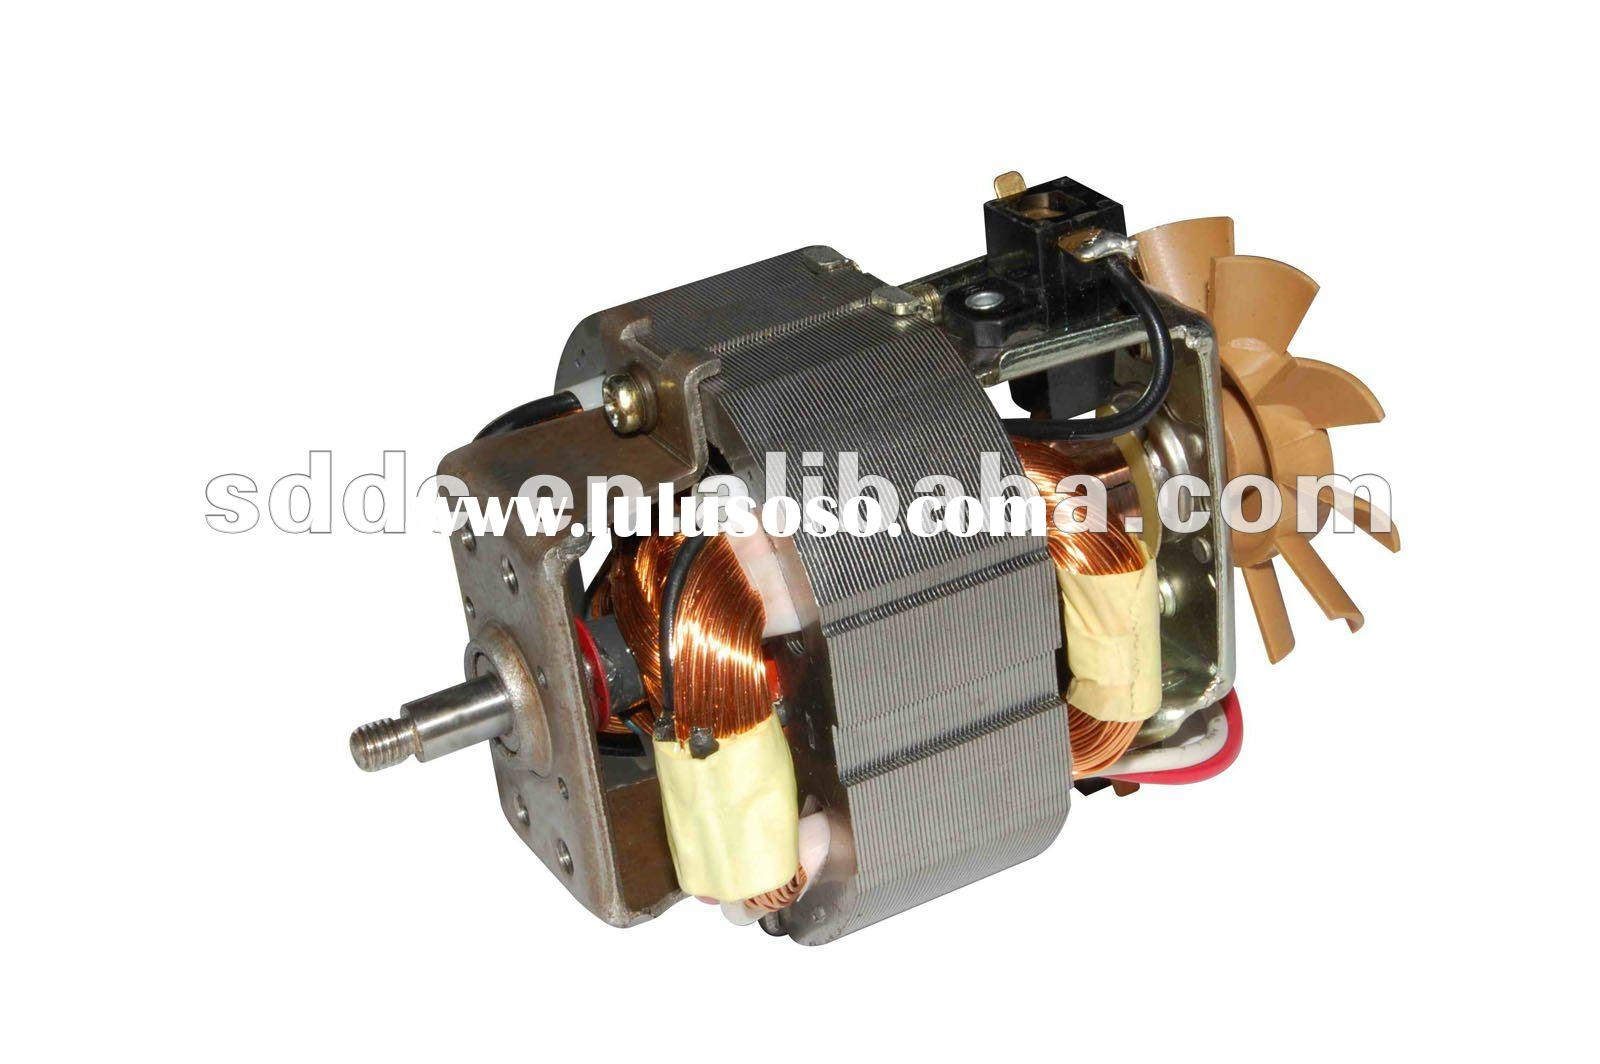 Pu5430 ac universal motor for hand mixer juicer blender for Ac motor blow dryer